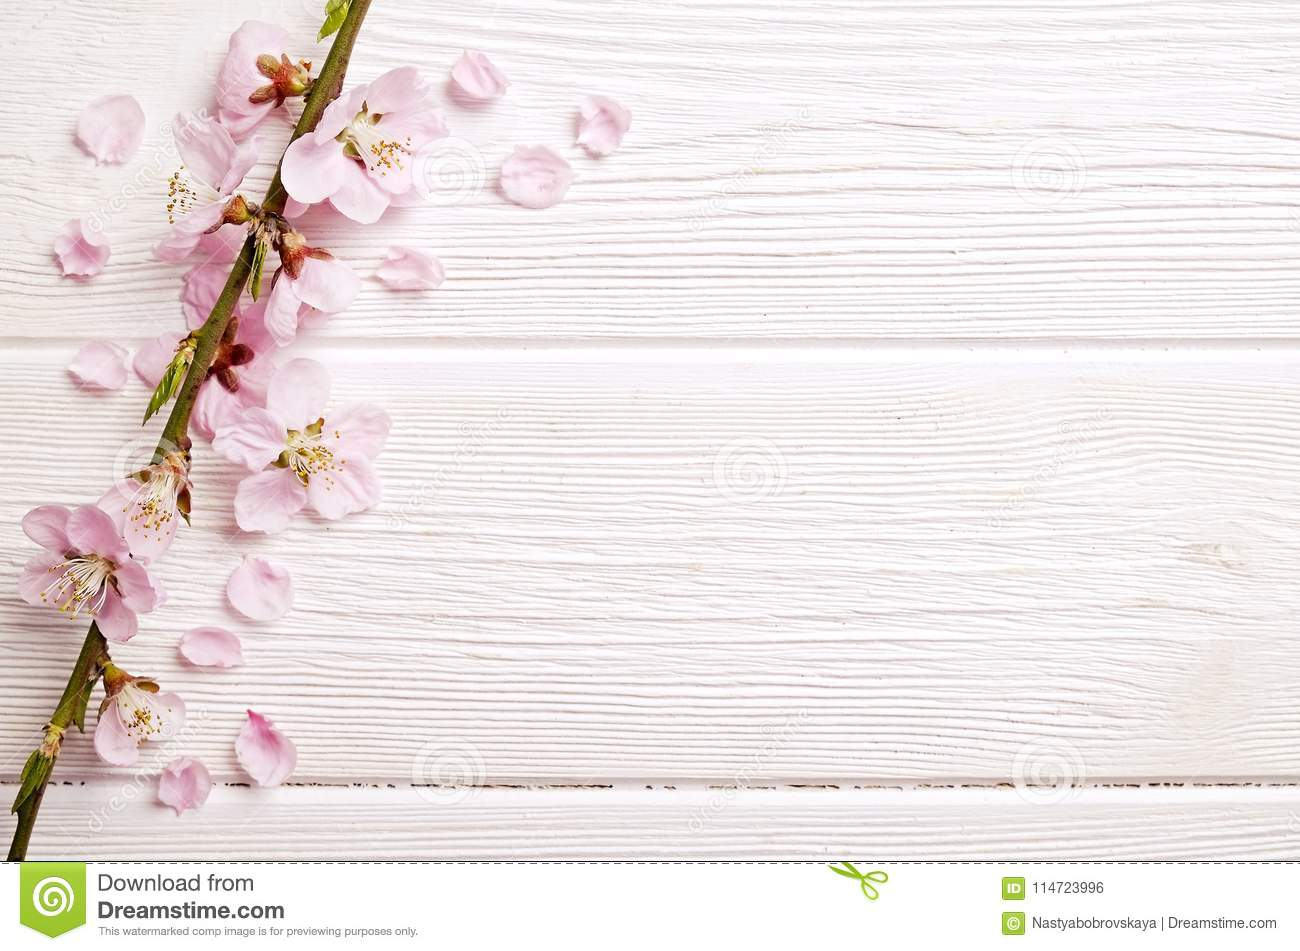 Beautiful spring composition with flowering blossoms on wooden background with copy space for text. Mother`s day greeting concept